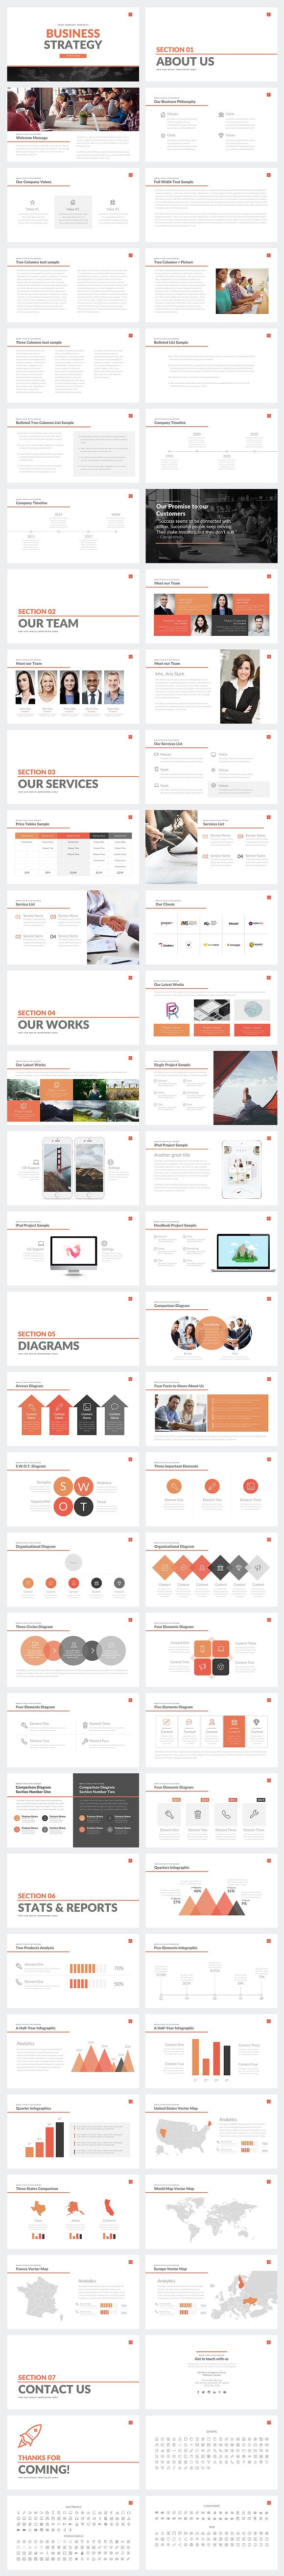 Business strategy deck powerpoint presentation templates business strategy deck powerpoint presentation templates creative market friedricerecipe Images